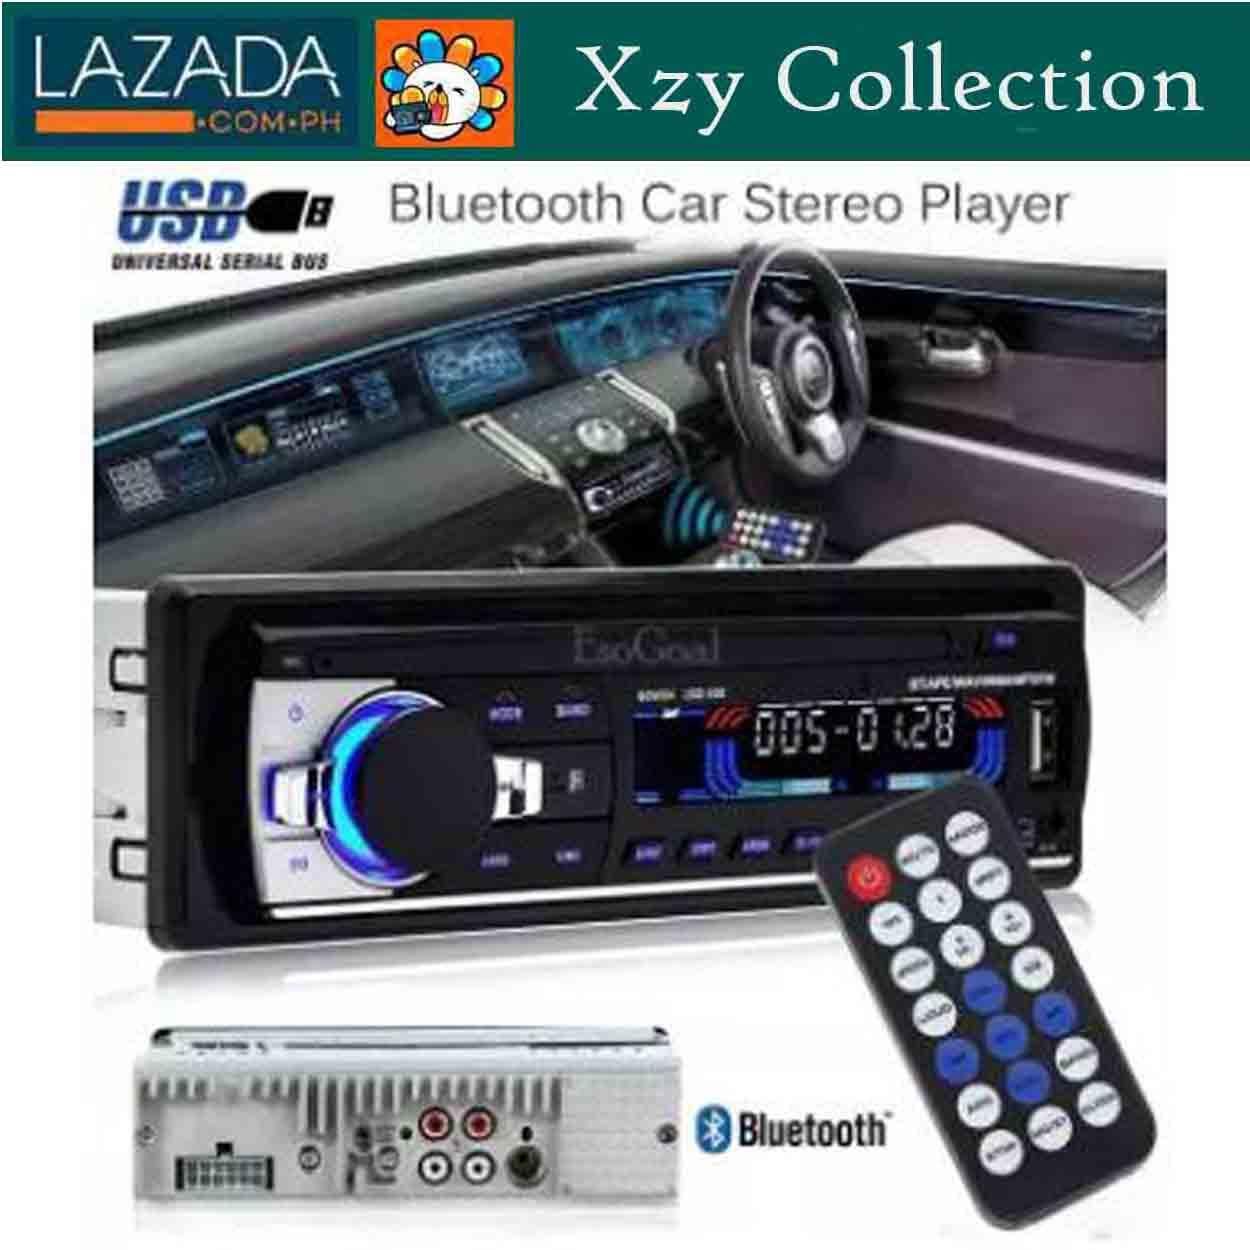 Car Stereo For Sale Cars Online Brands Prices 2003 Chevy Trailblazer Cd Player Bluetooth Wireless Digital Media Single Din In Dash Receivers Usb Sd